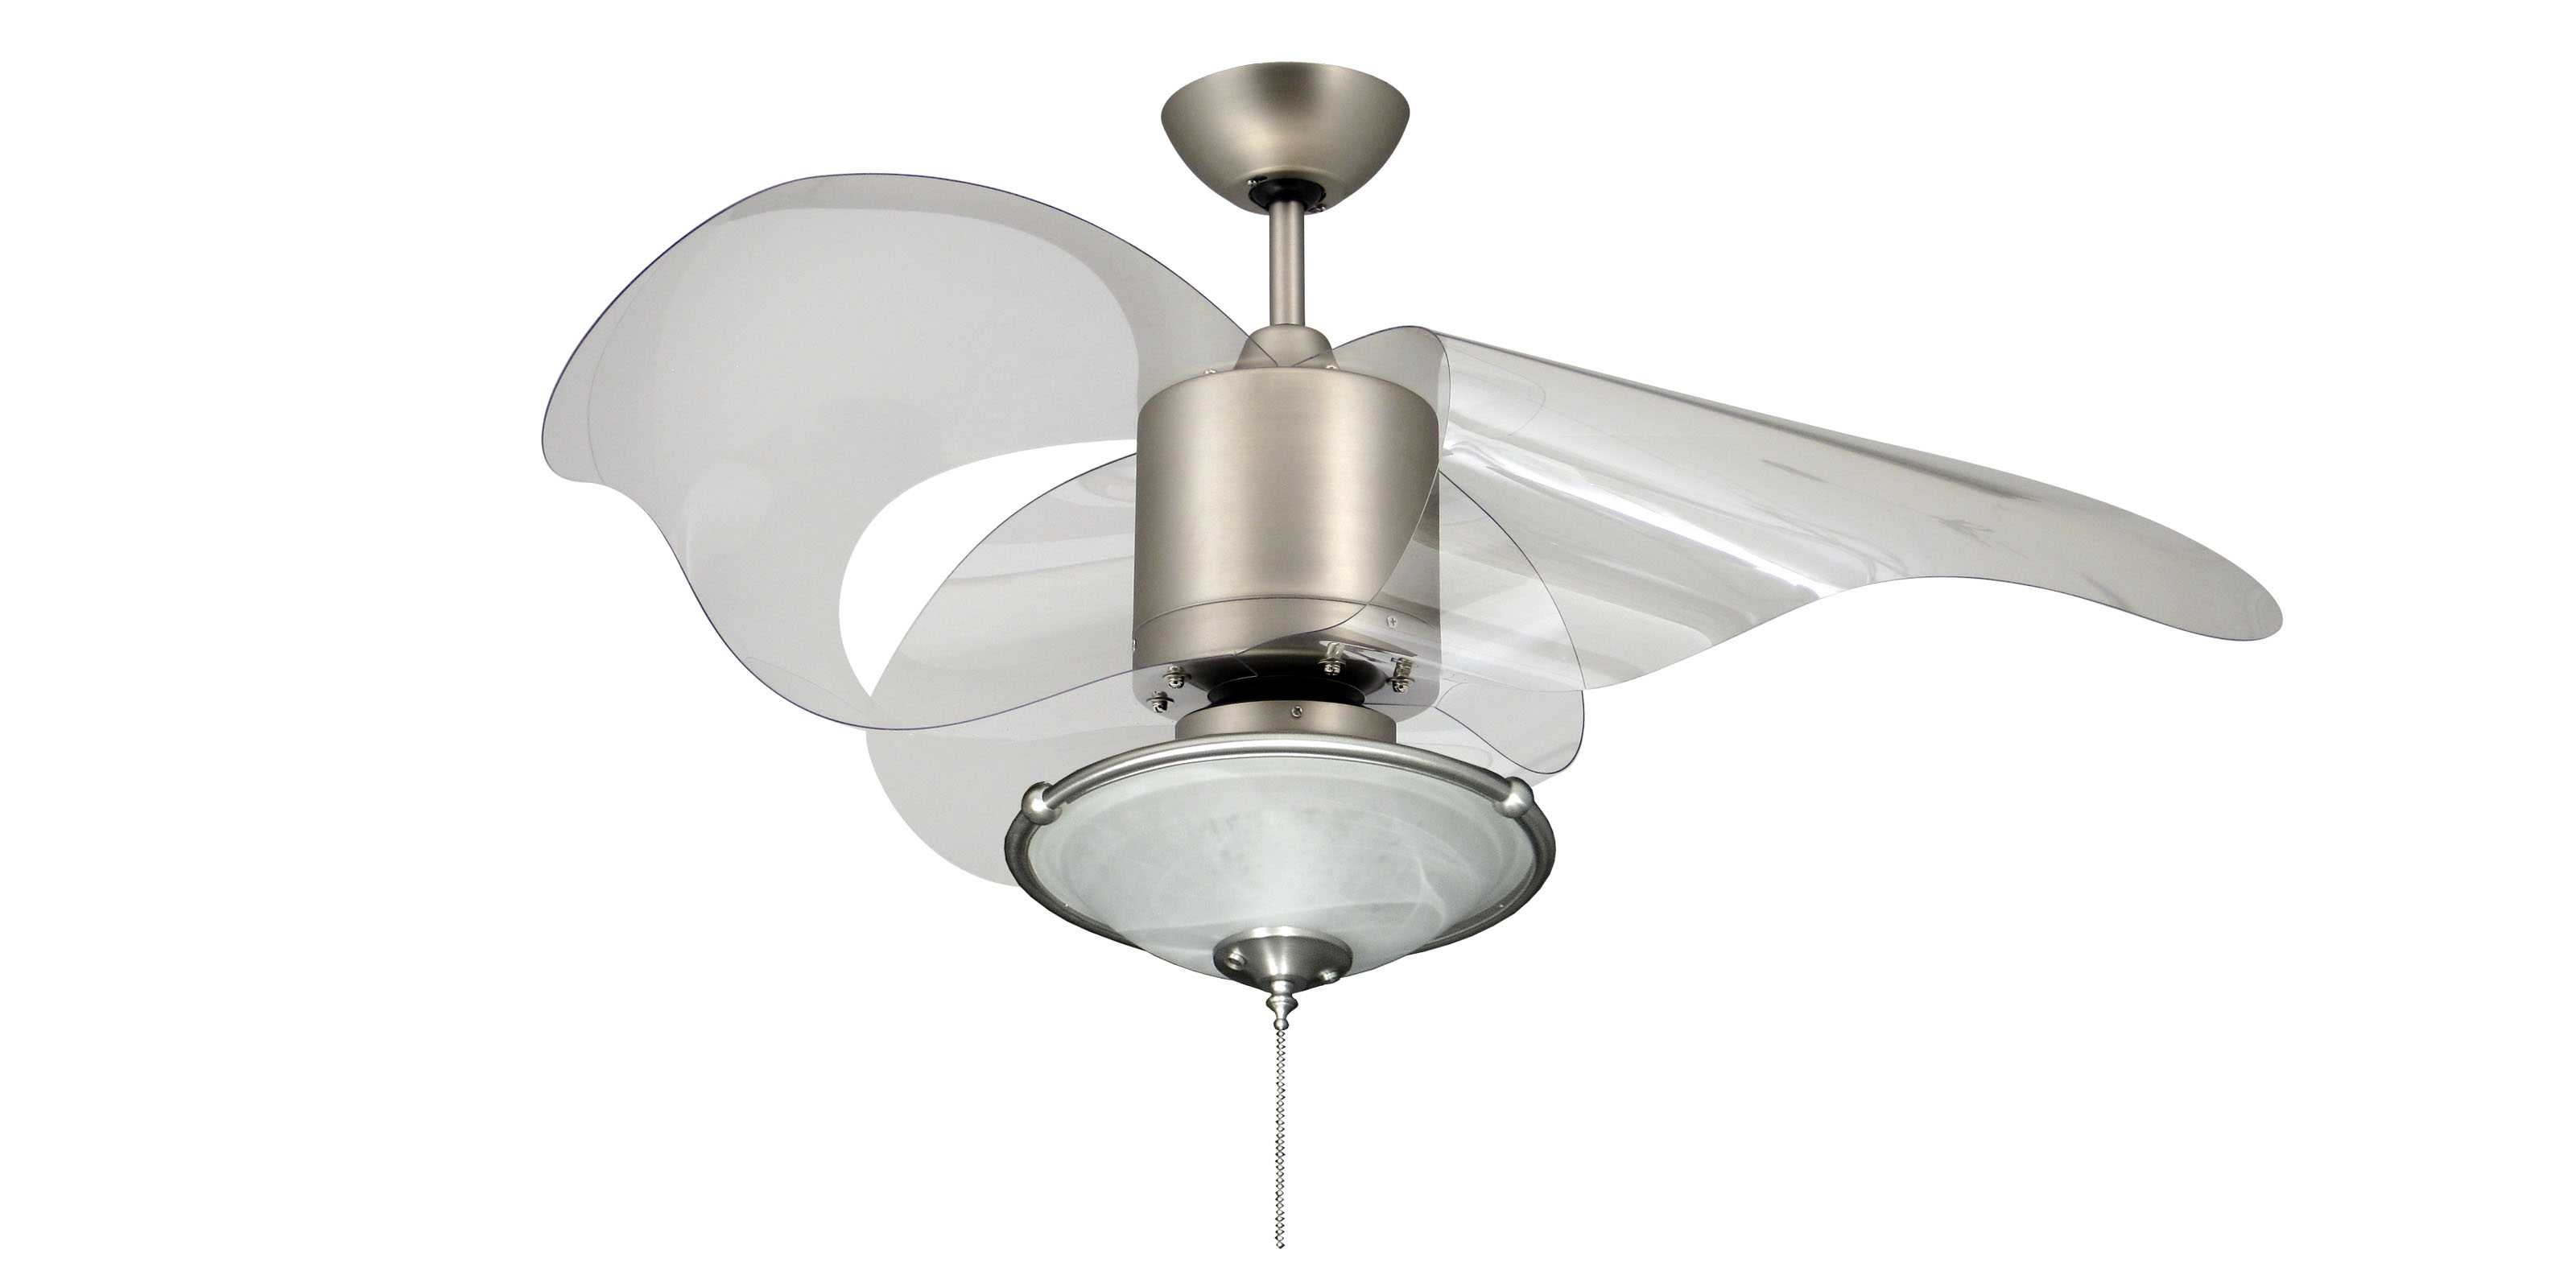 Recent Small Outdoor Ceiling Fans With Lights In Interesting I Small Outdoor Ceiling Fan With Light 2018 Ceiling (View 3 of 20)